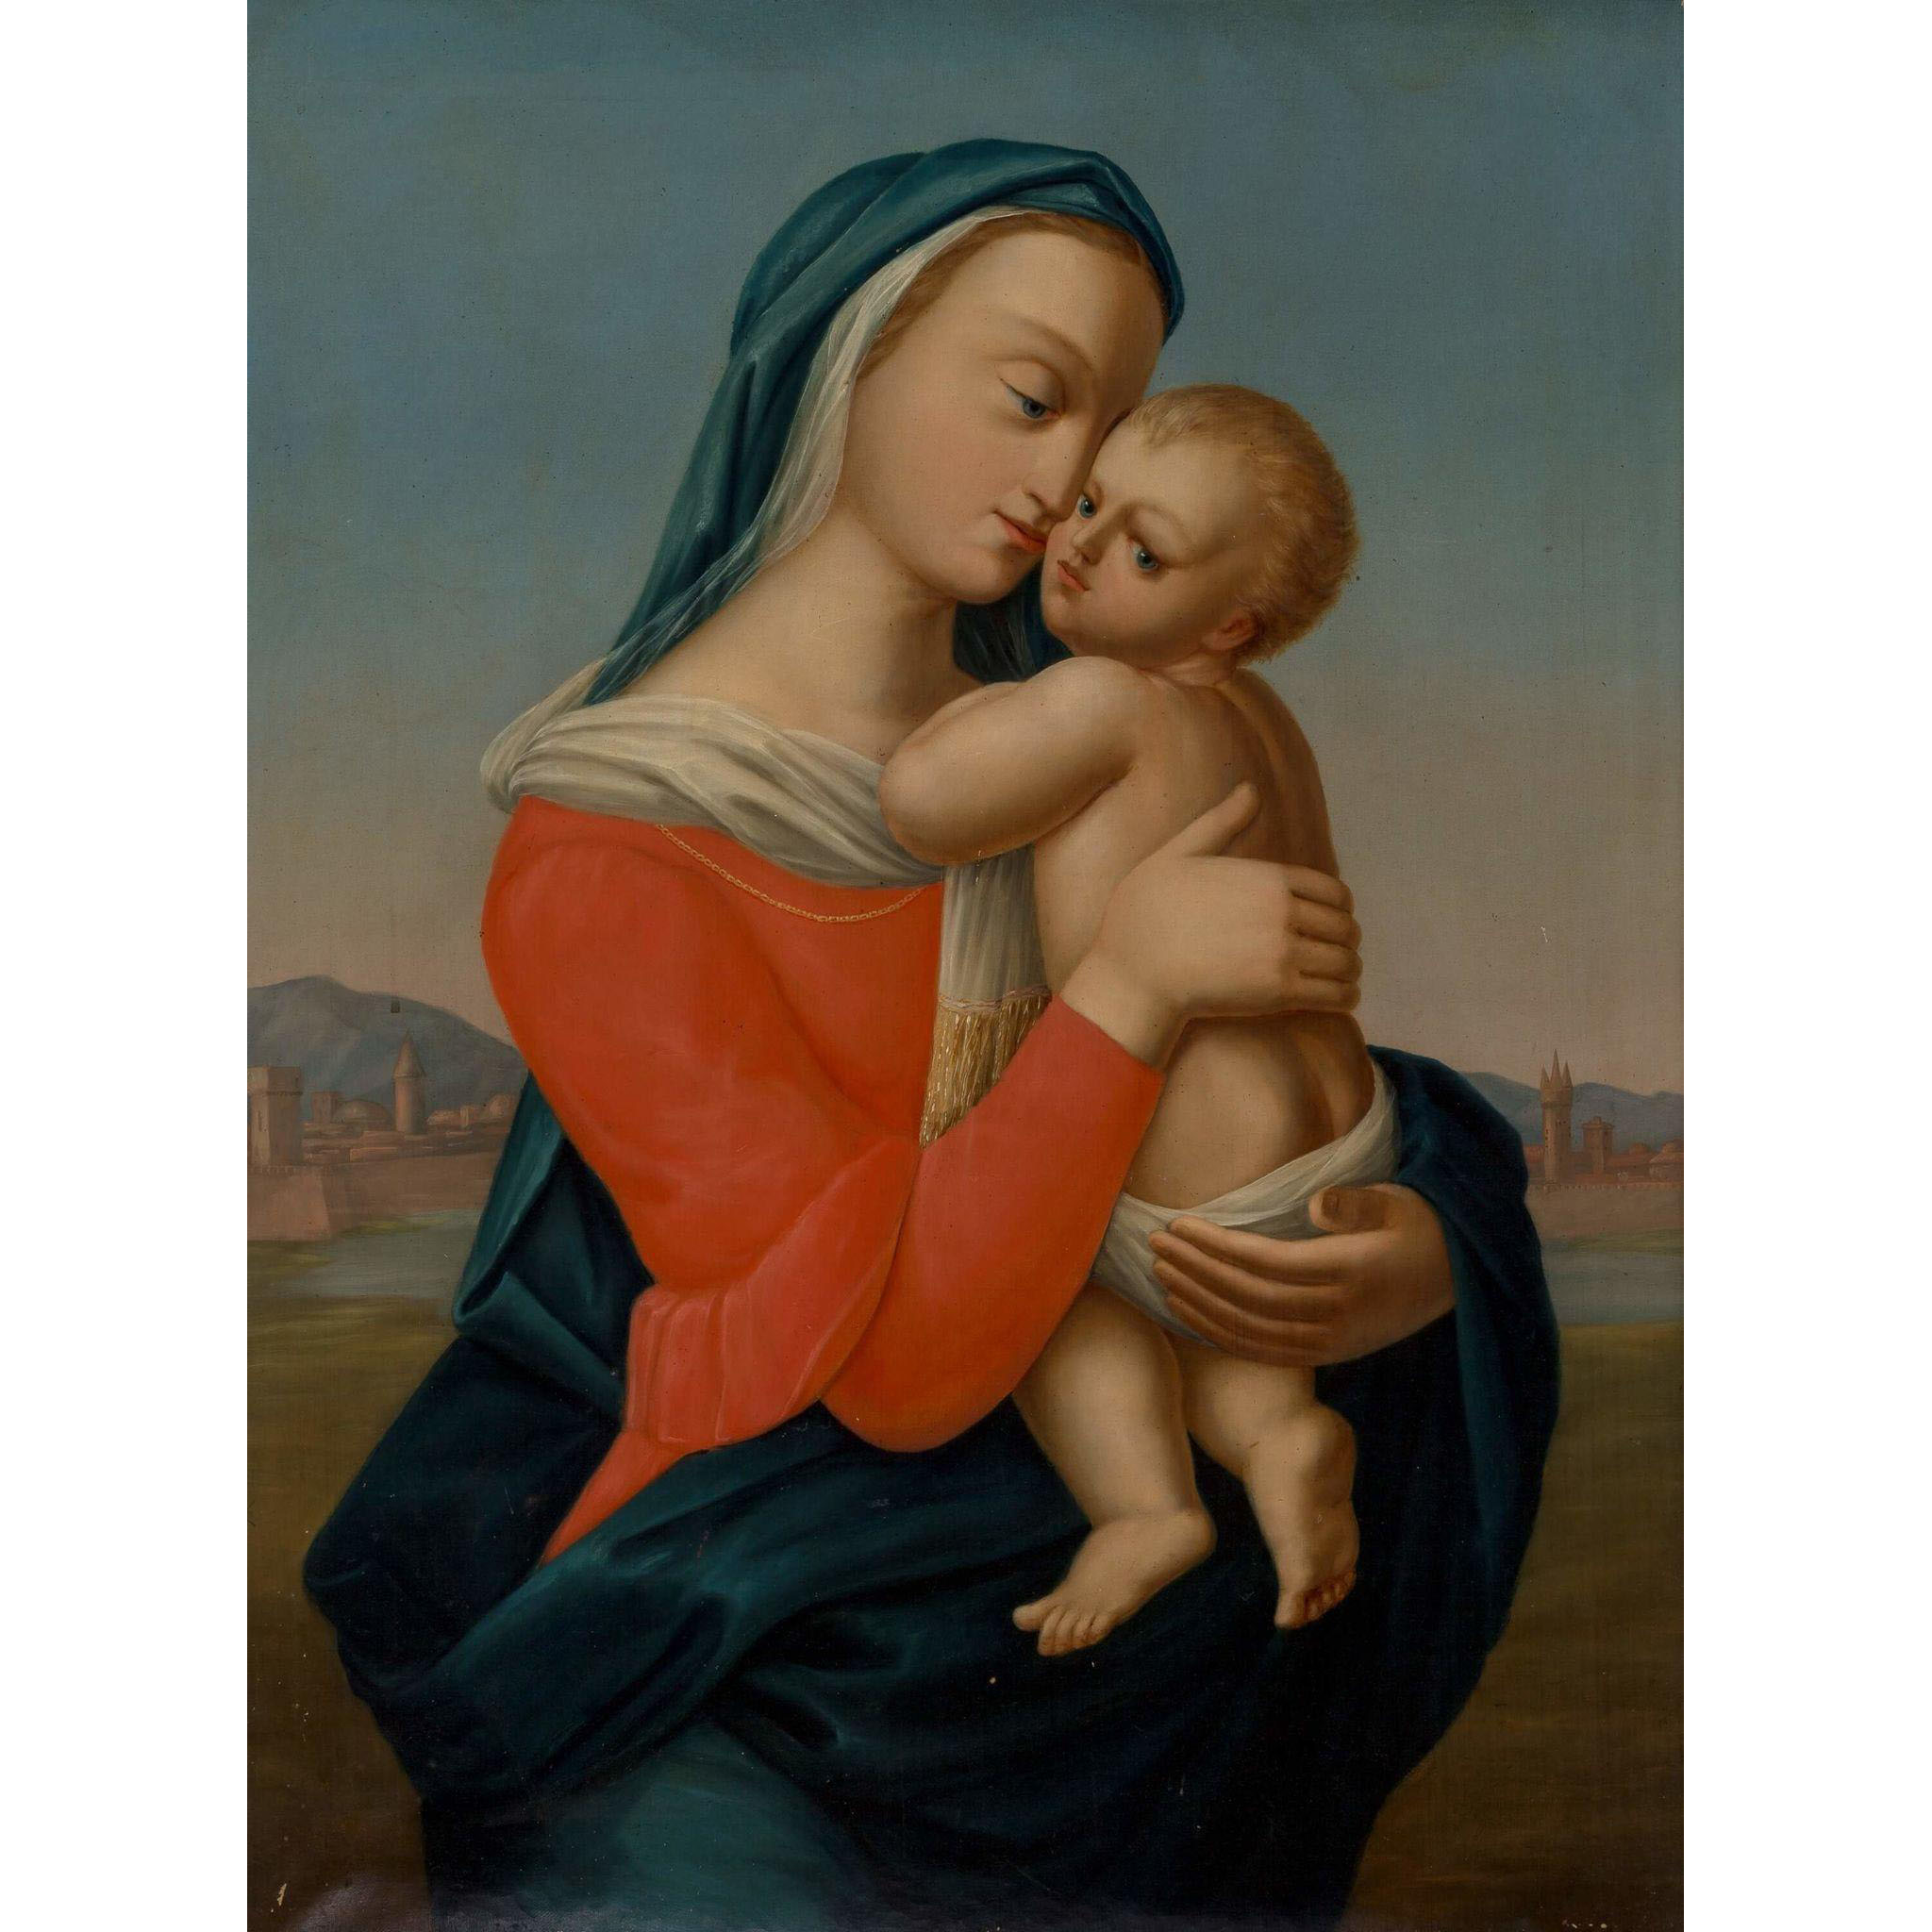 After RAPHAEL (Italian) - Original Oil On Canvas - Madonna and Child - Tempi Madonna - Very Large and Moving Depiction.